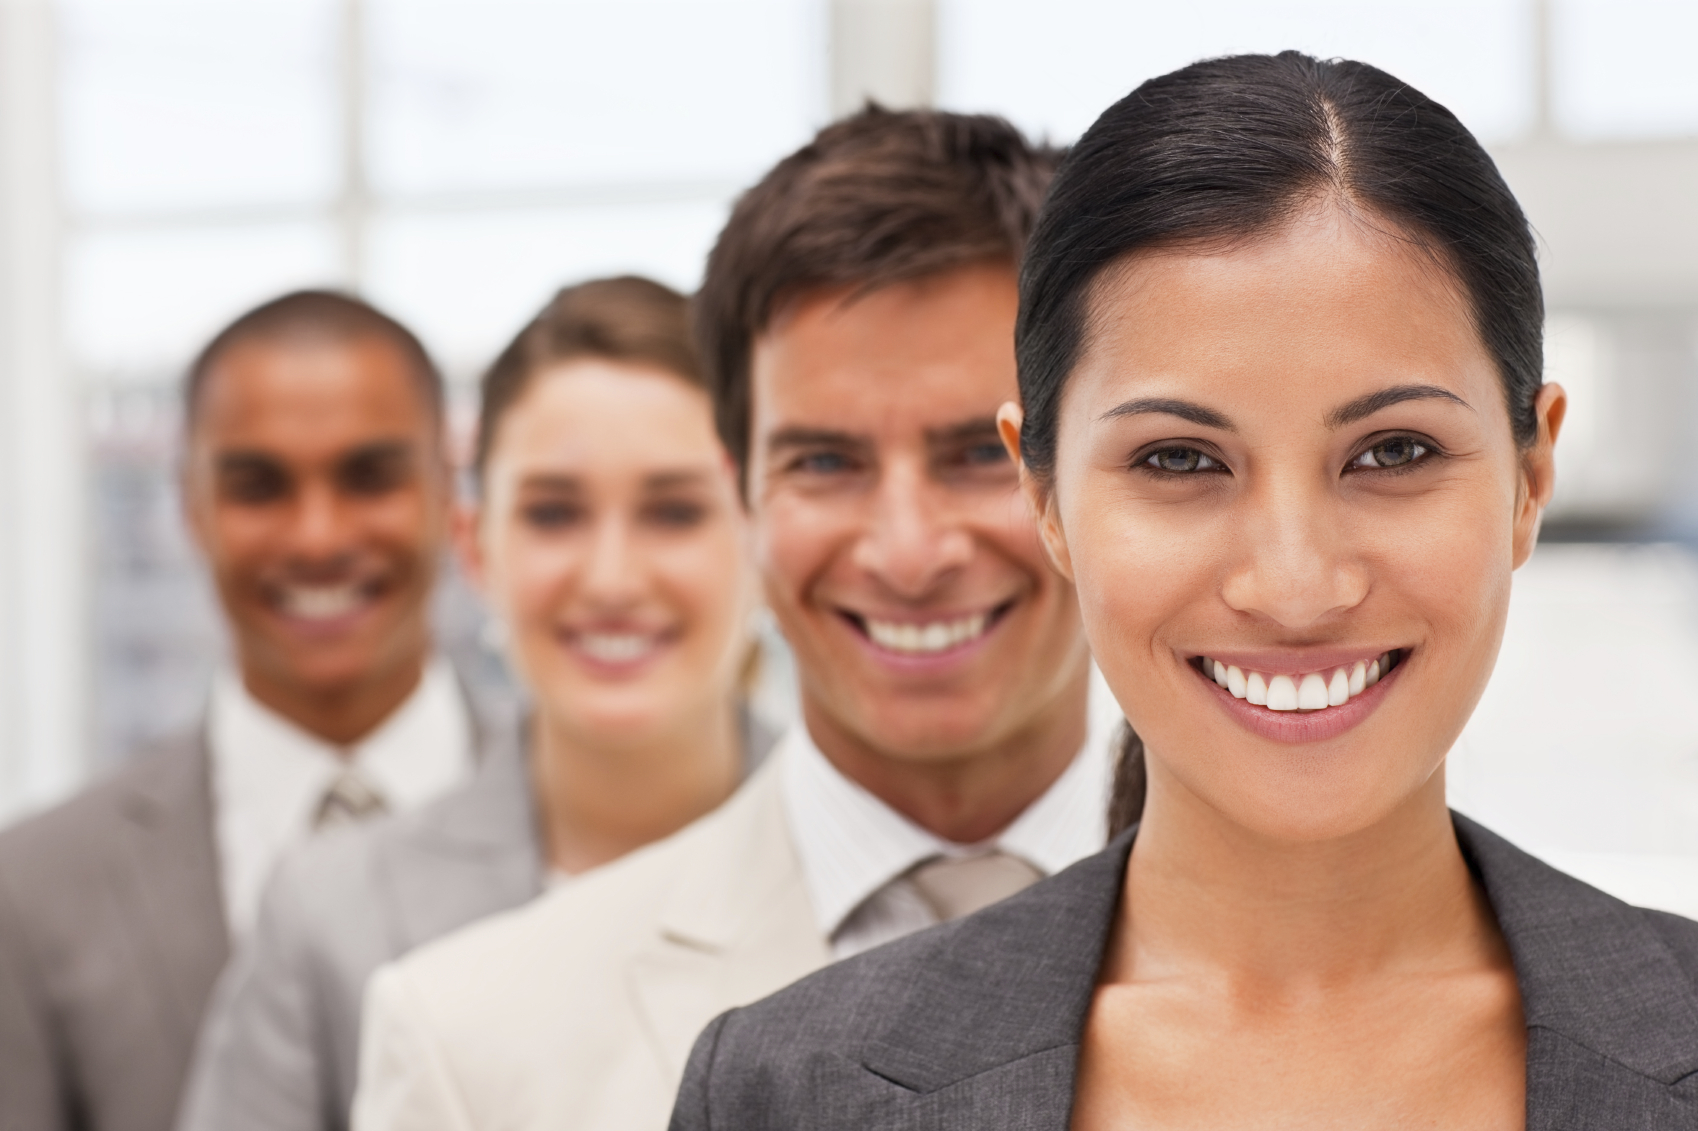 Building Business Relationships: Let's Get Personal